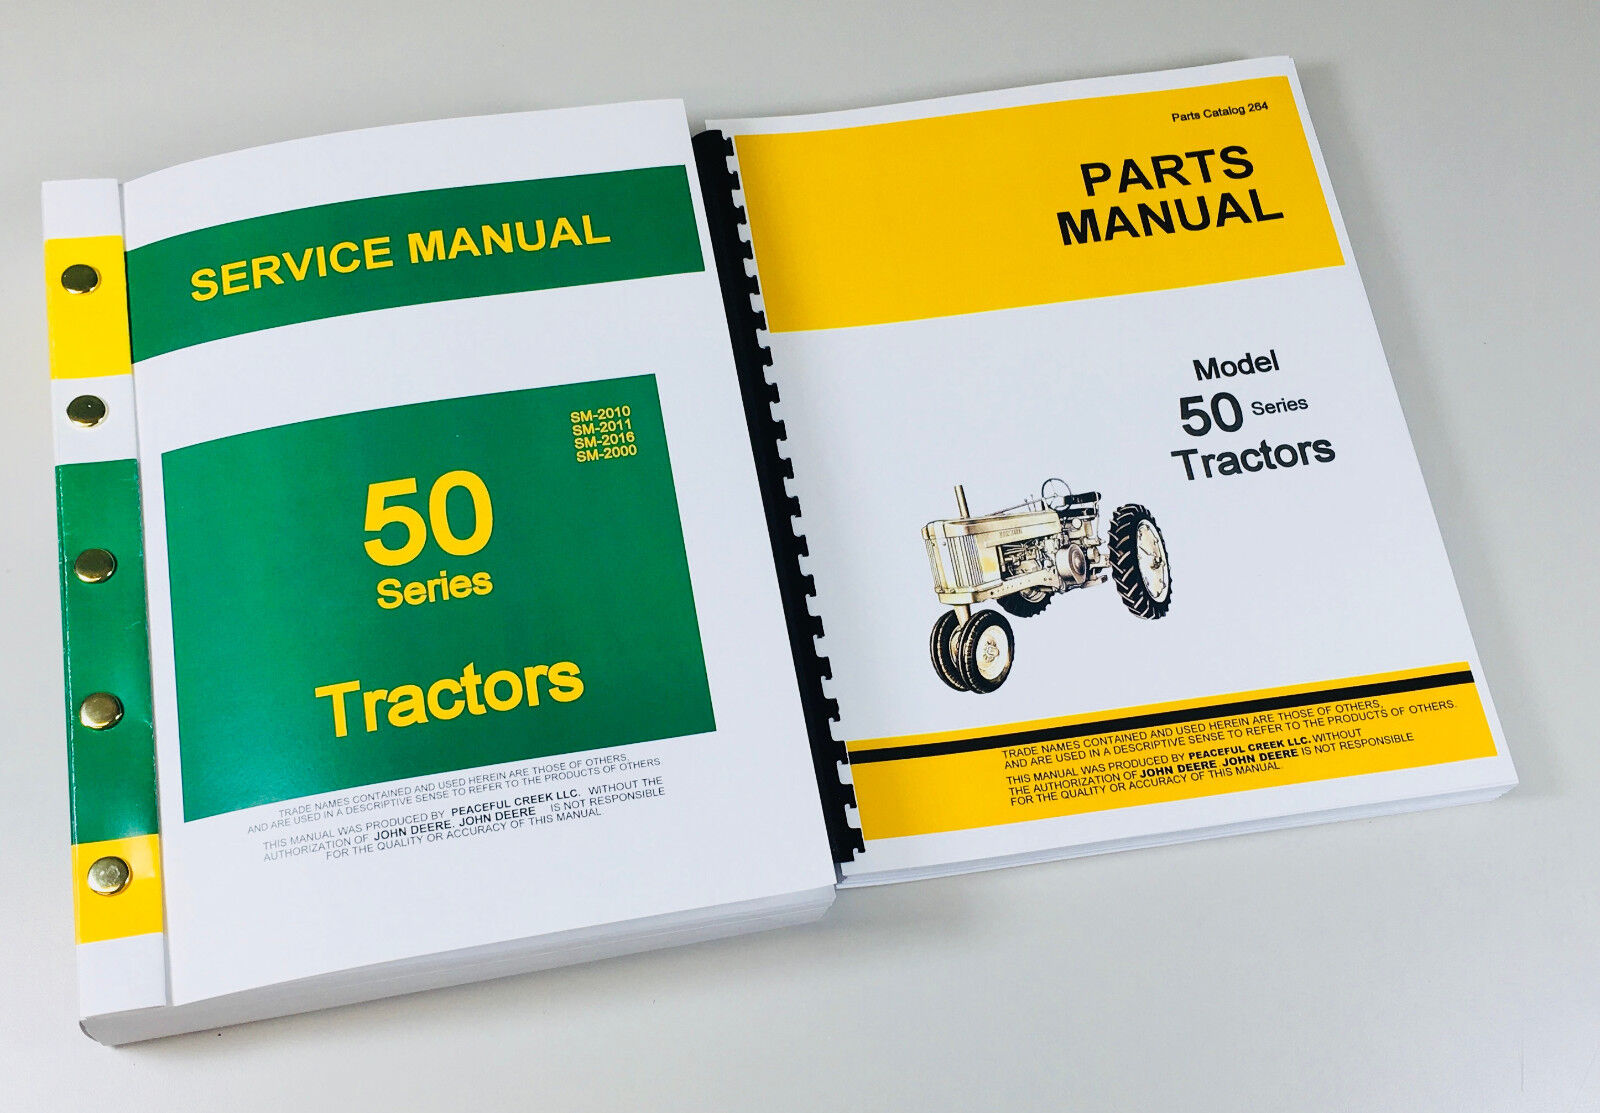 """The service manual alone is actually four (4) crucial 50 series Deere  manuals compiled into one """"Master"""" Manual that has over 630 pages total!"""